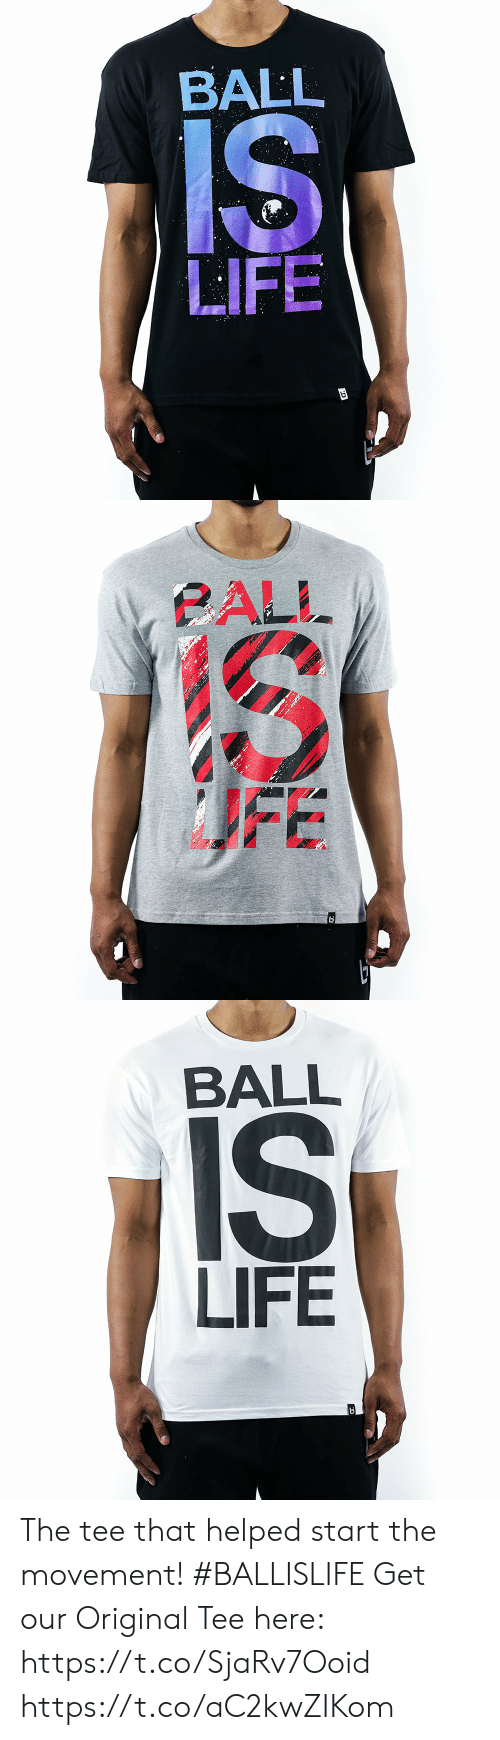 life ball: BALL  LIFE   BALL  IS  LIFE The tee that helped start the movement! #BALLISLIFE  Get our Original Tee here: https://t.co/SjaRv7Ooid https://t.co/aC2kwZIKom